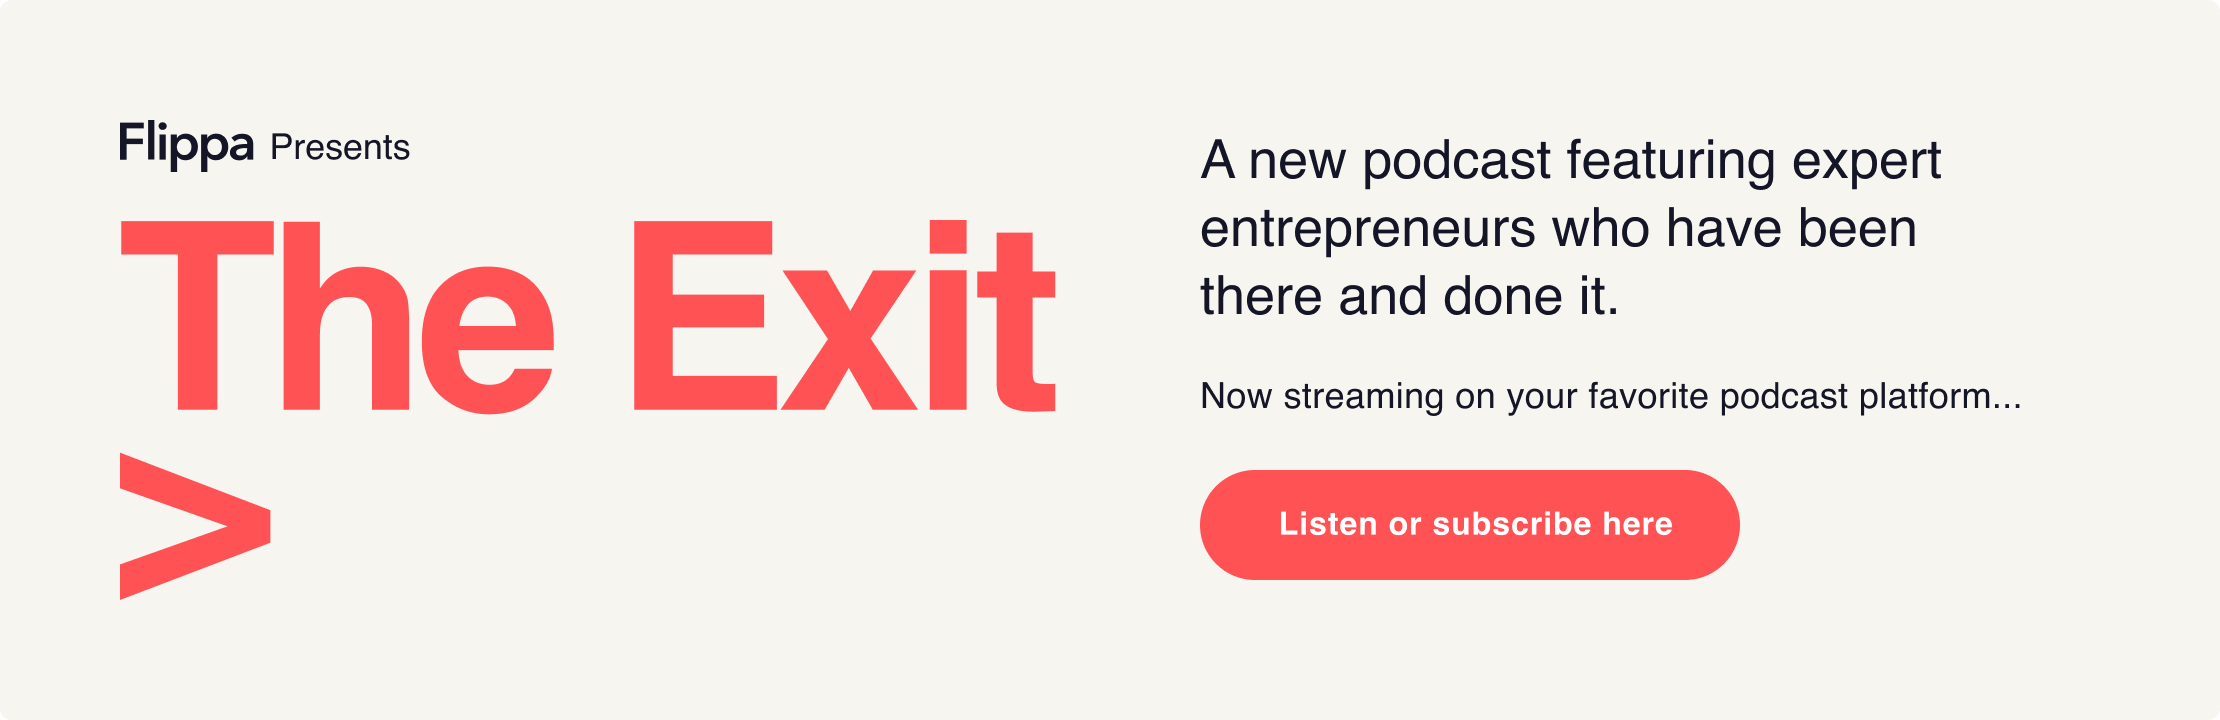 https://flippa.com/the-exit-podcast/